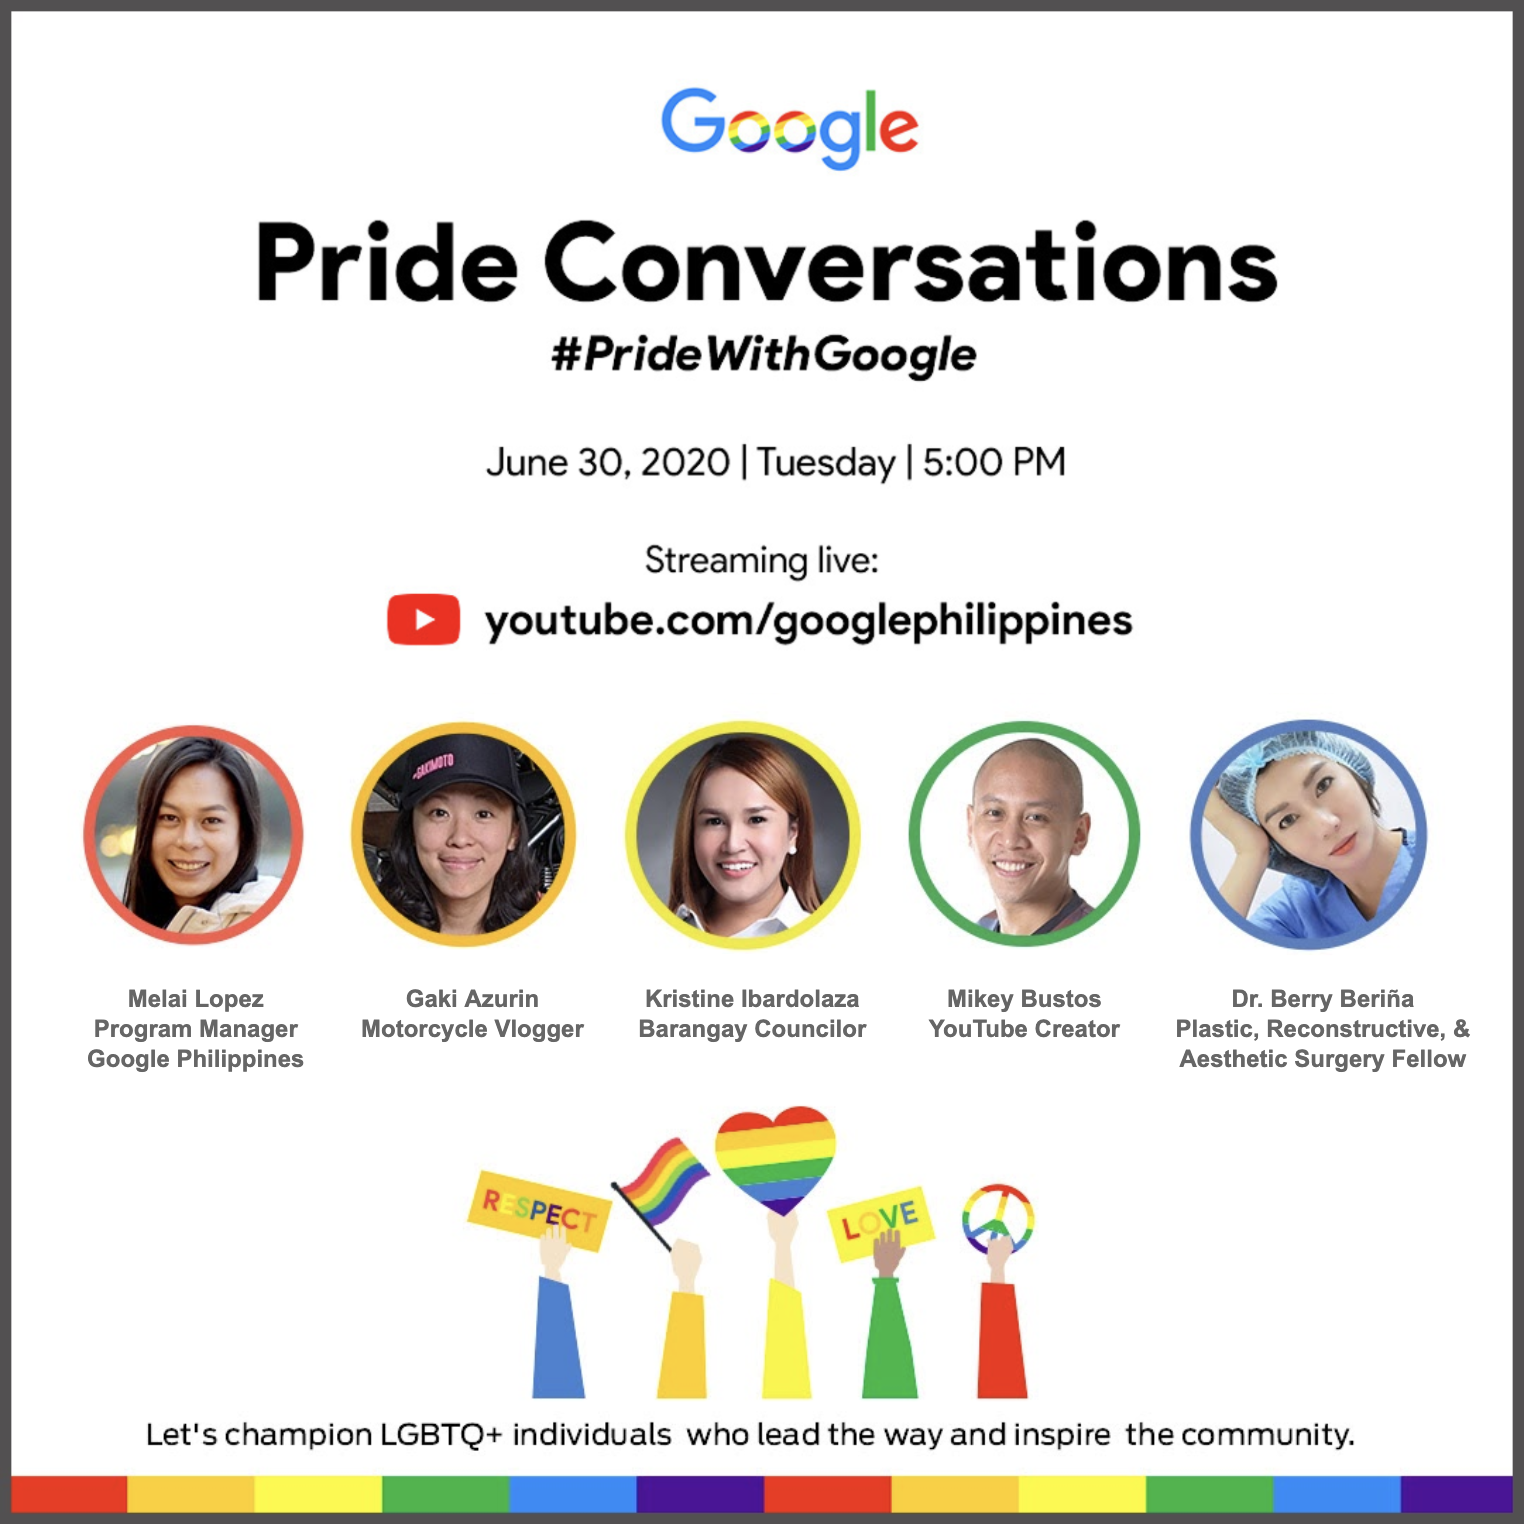 Google's 'Pride Conversations' on YouTube to Honor the LGBTQ+ Community